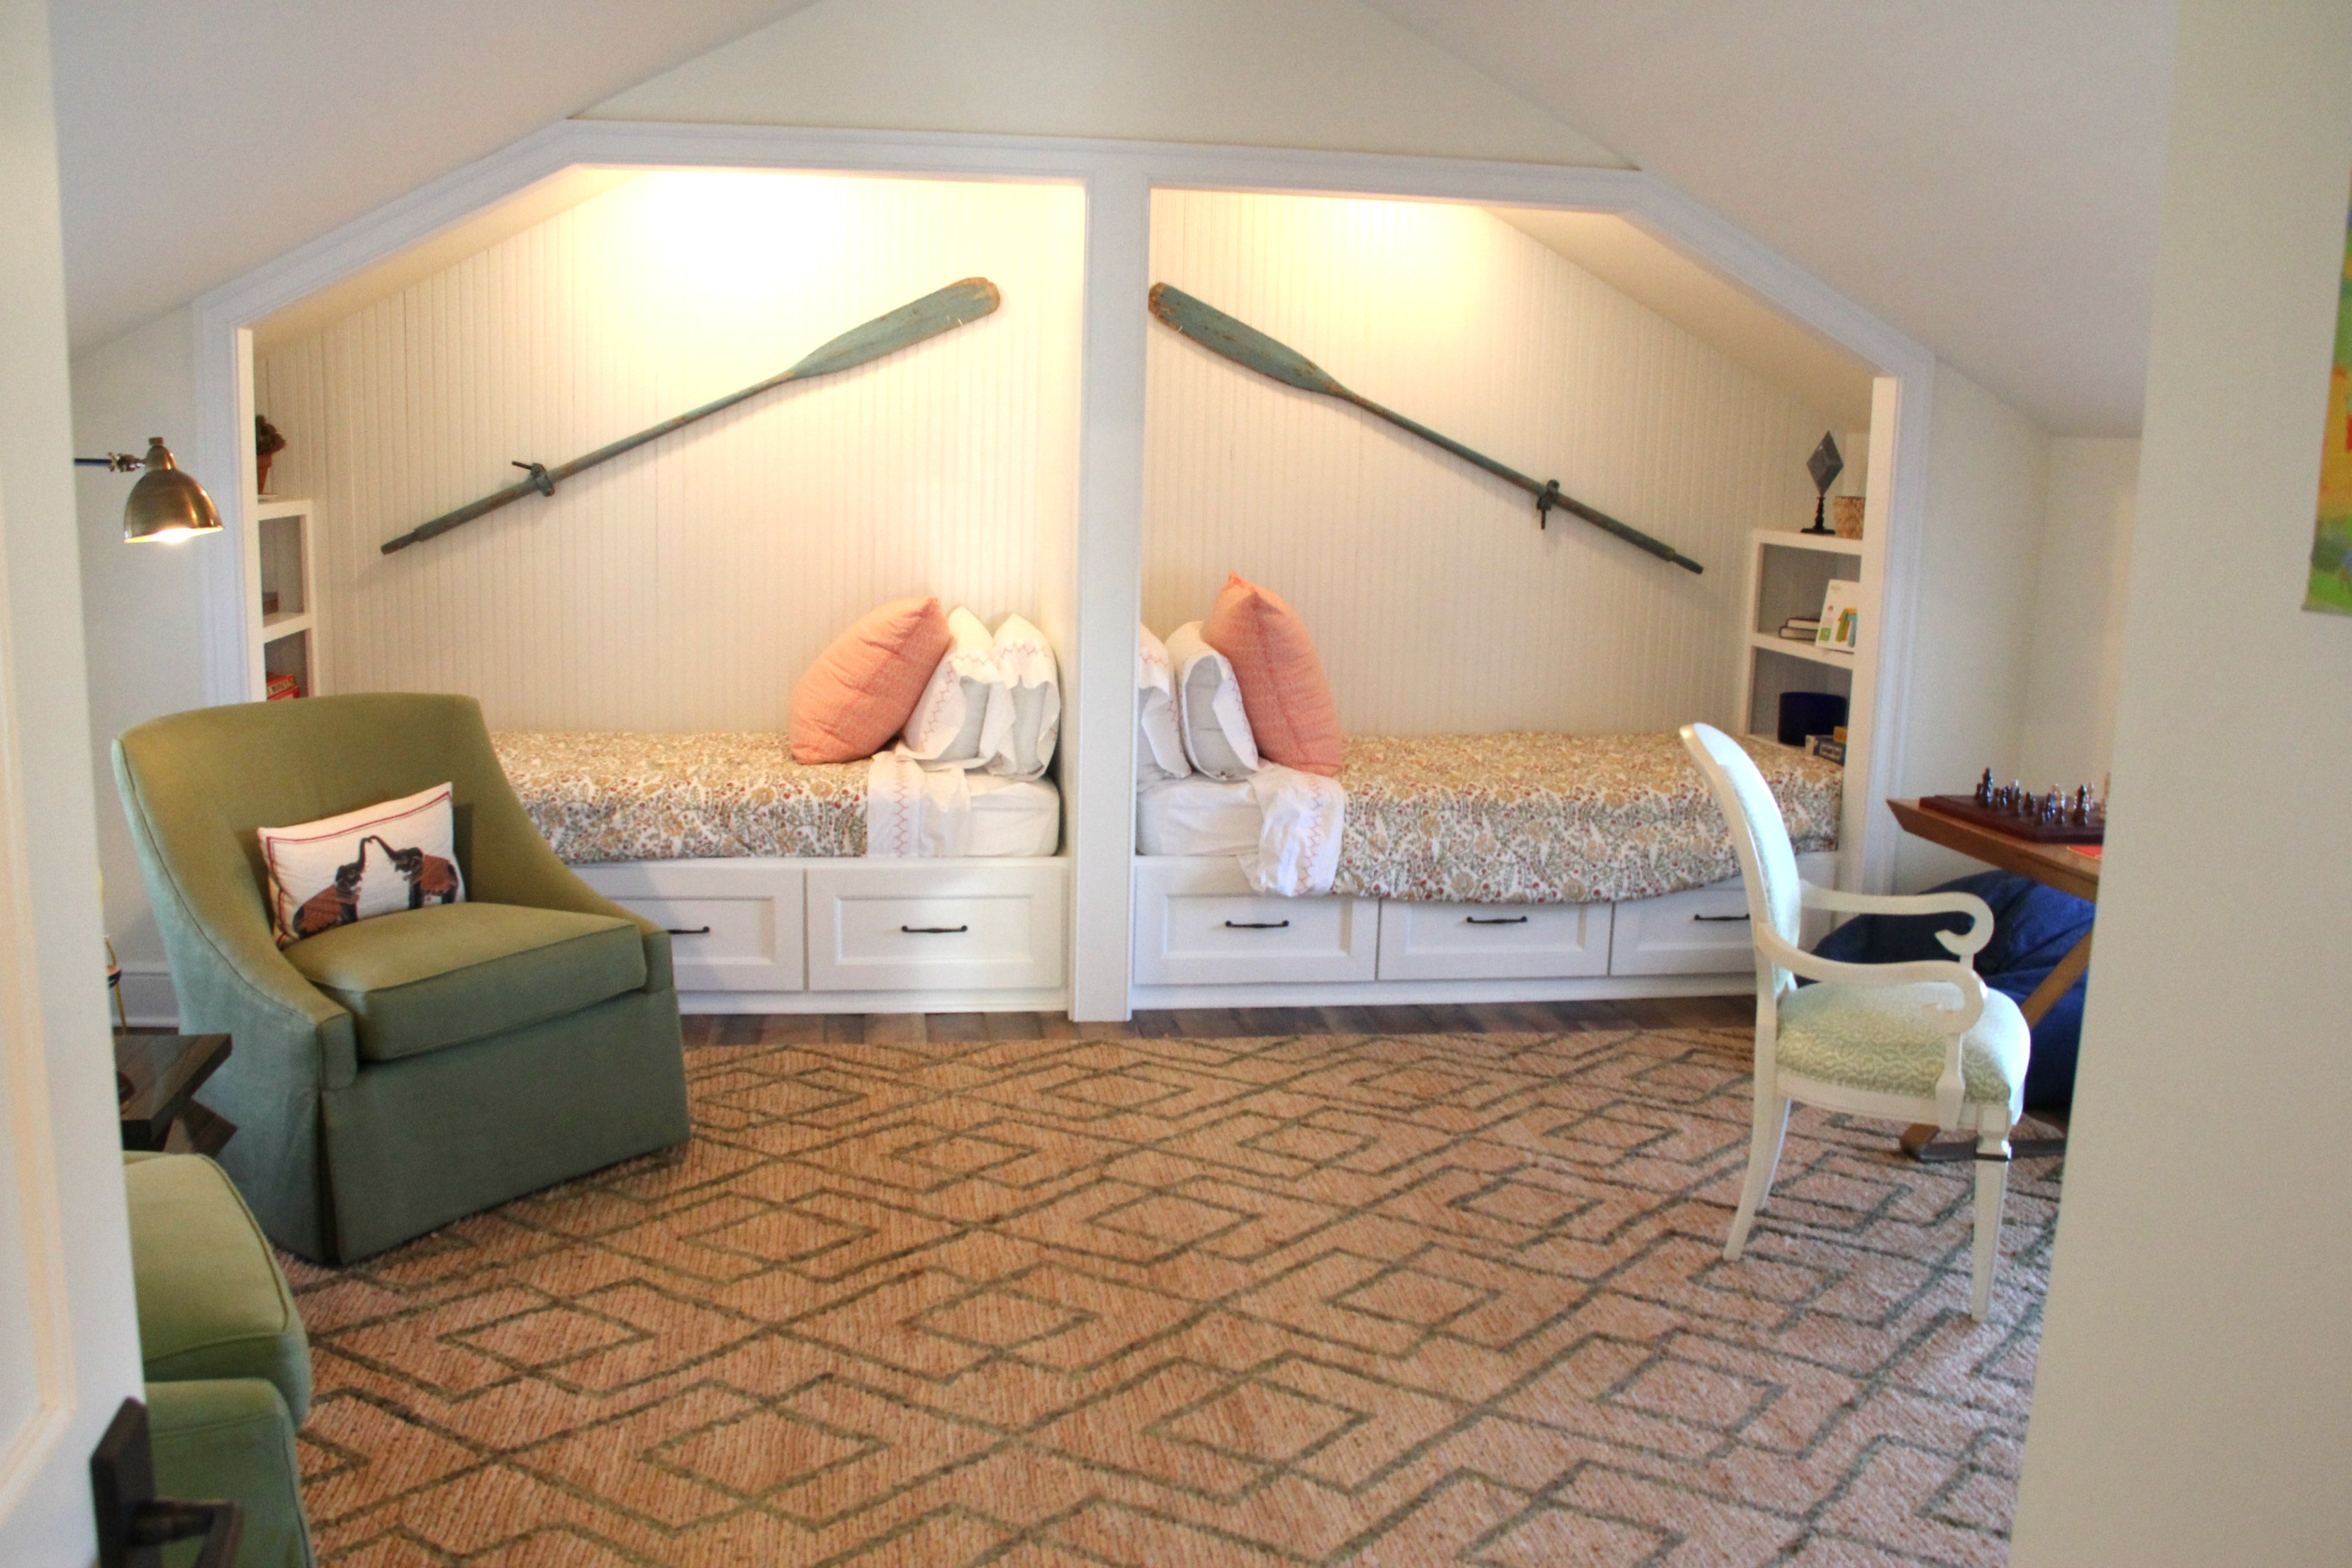 great shared room!!! Southern living design Idea House!